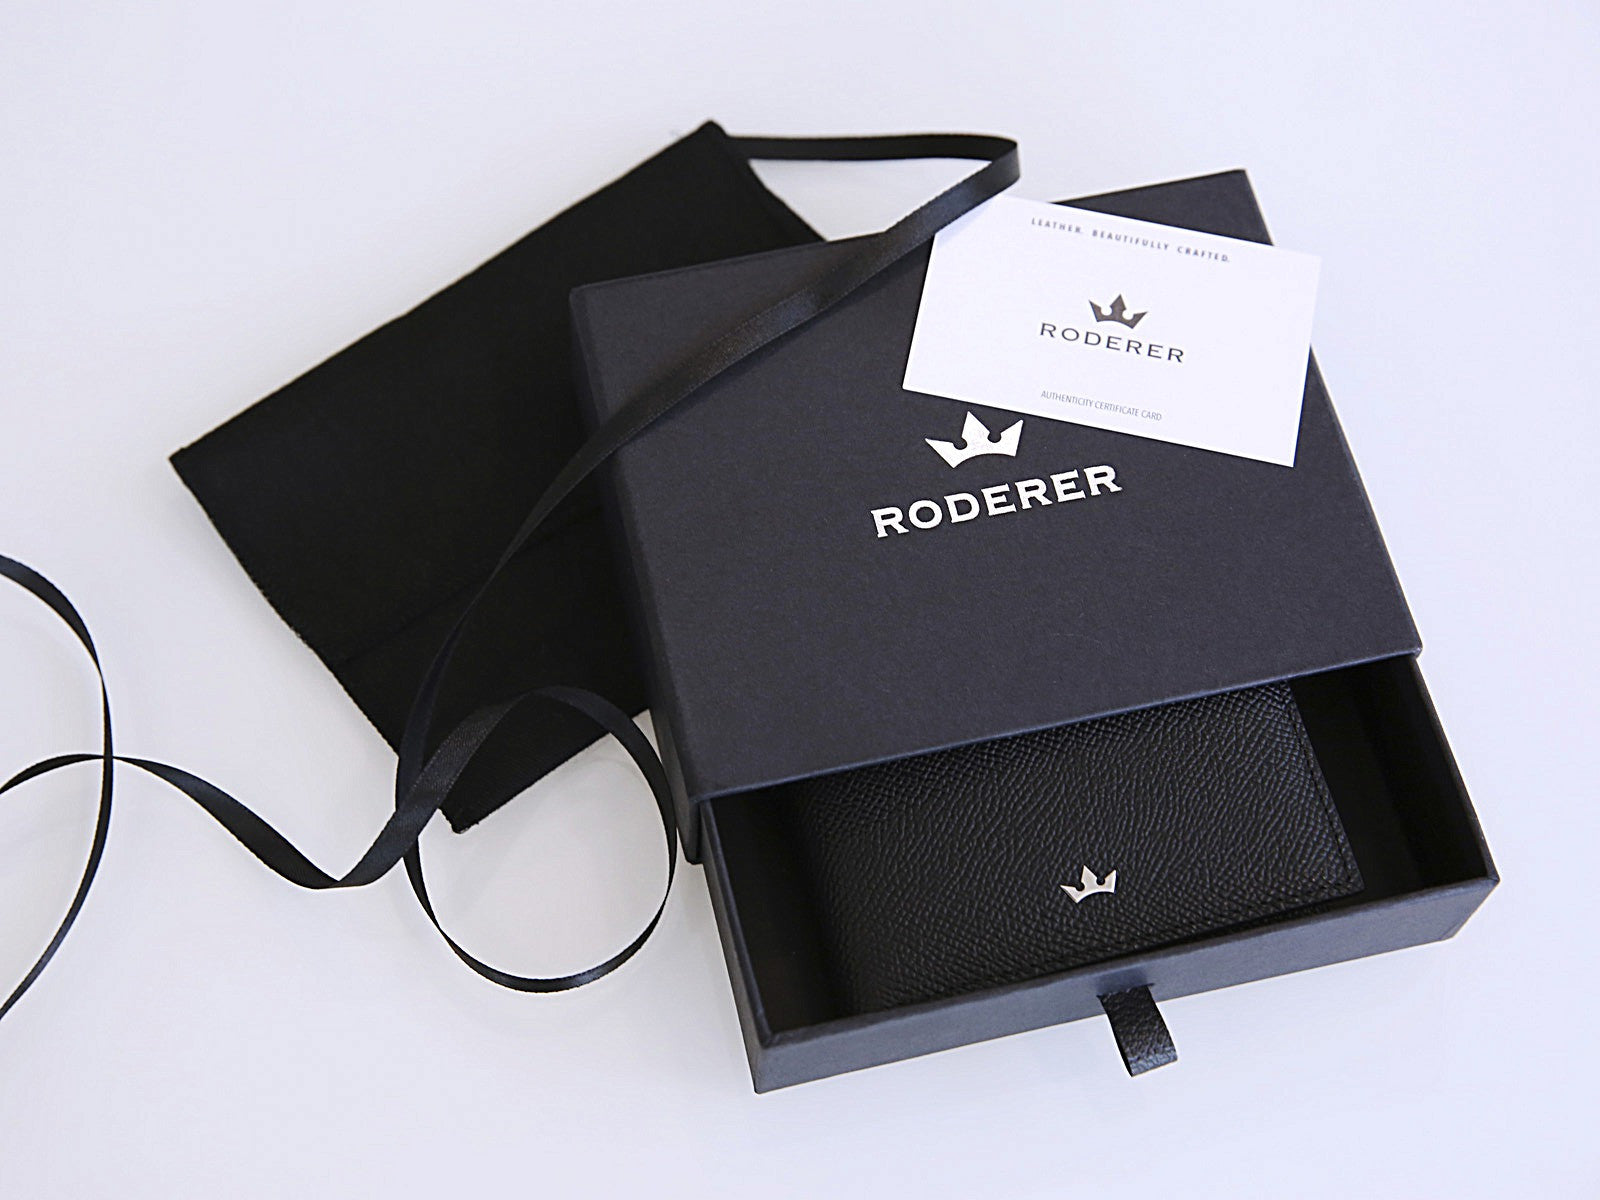 Roderer Bifold 6 Card Trophy Saffiano Navy Blue Money Clip Wallet Packaging